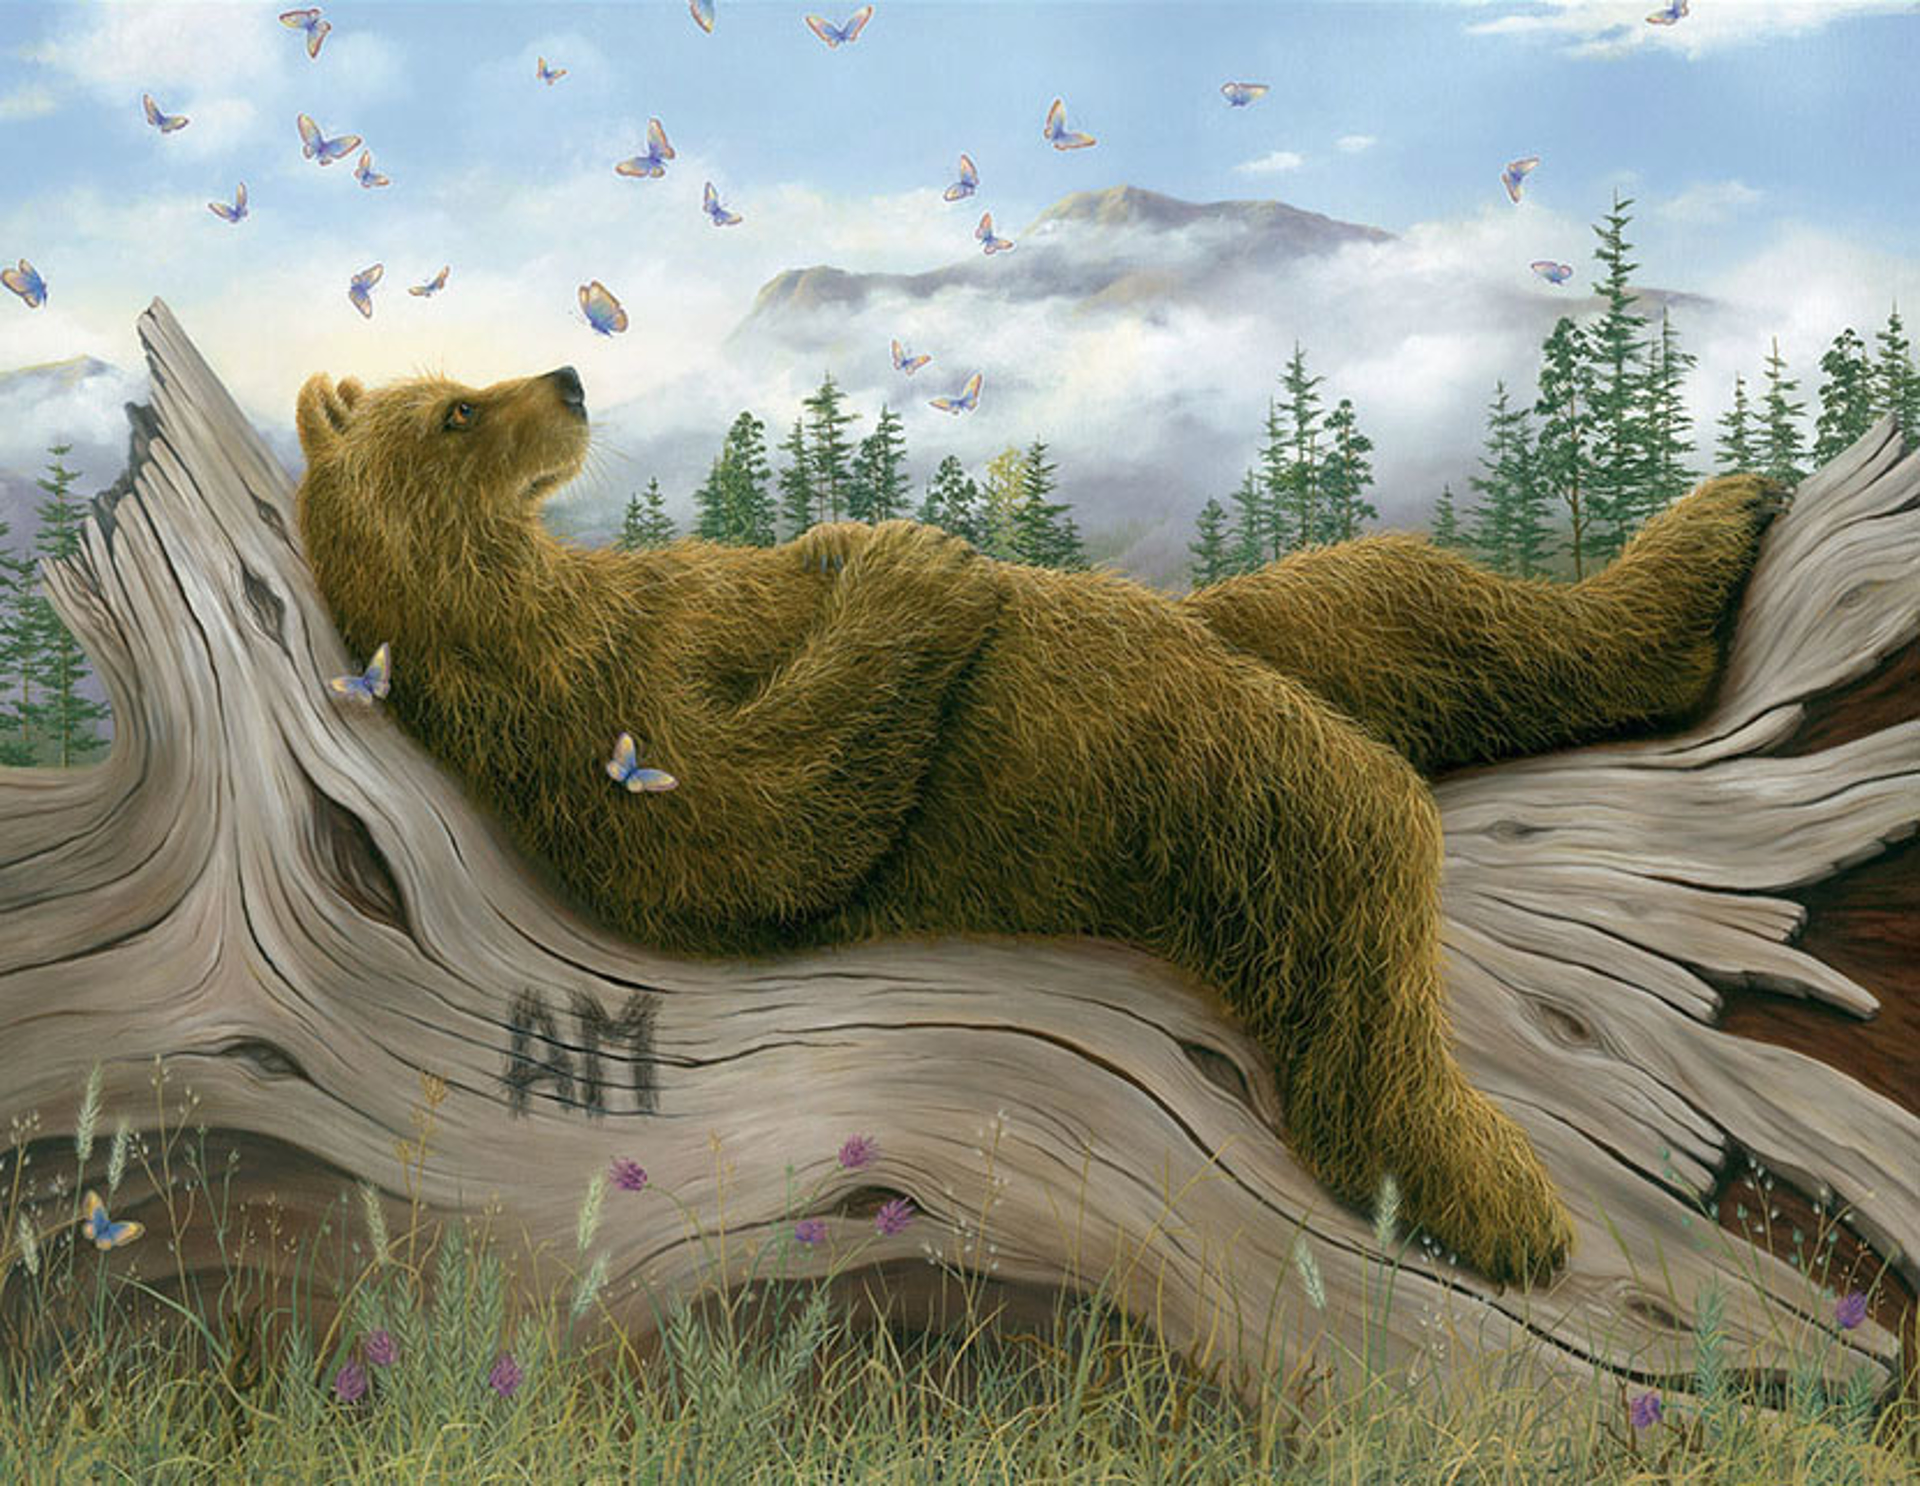 Am II by Robert Bissell